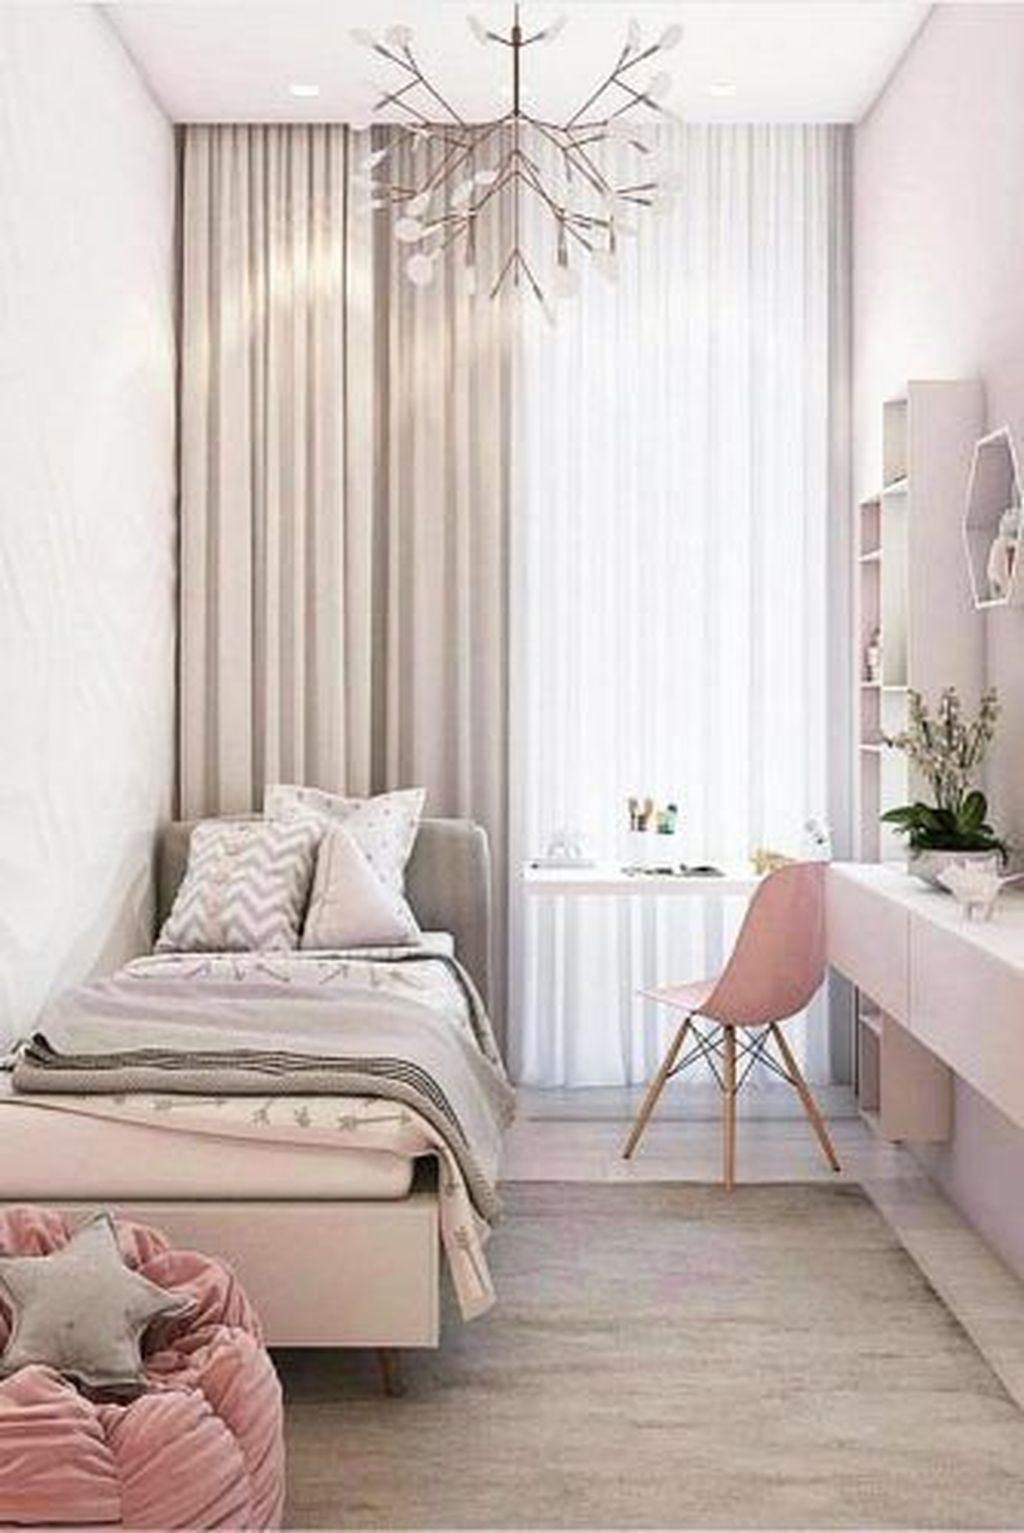 Awesome 57 Modern Small Bedroom Design Ideas For Home More At Https Homystyle Com 2018 10 16 57 Mode Small Apartment Bedrooms Stylish Bedroom Simple Bedroom